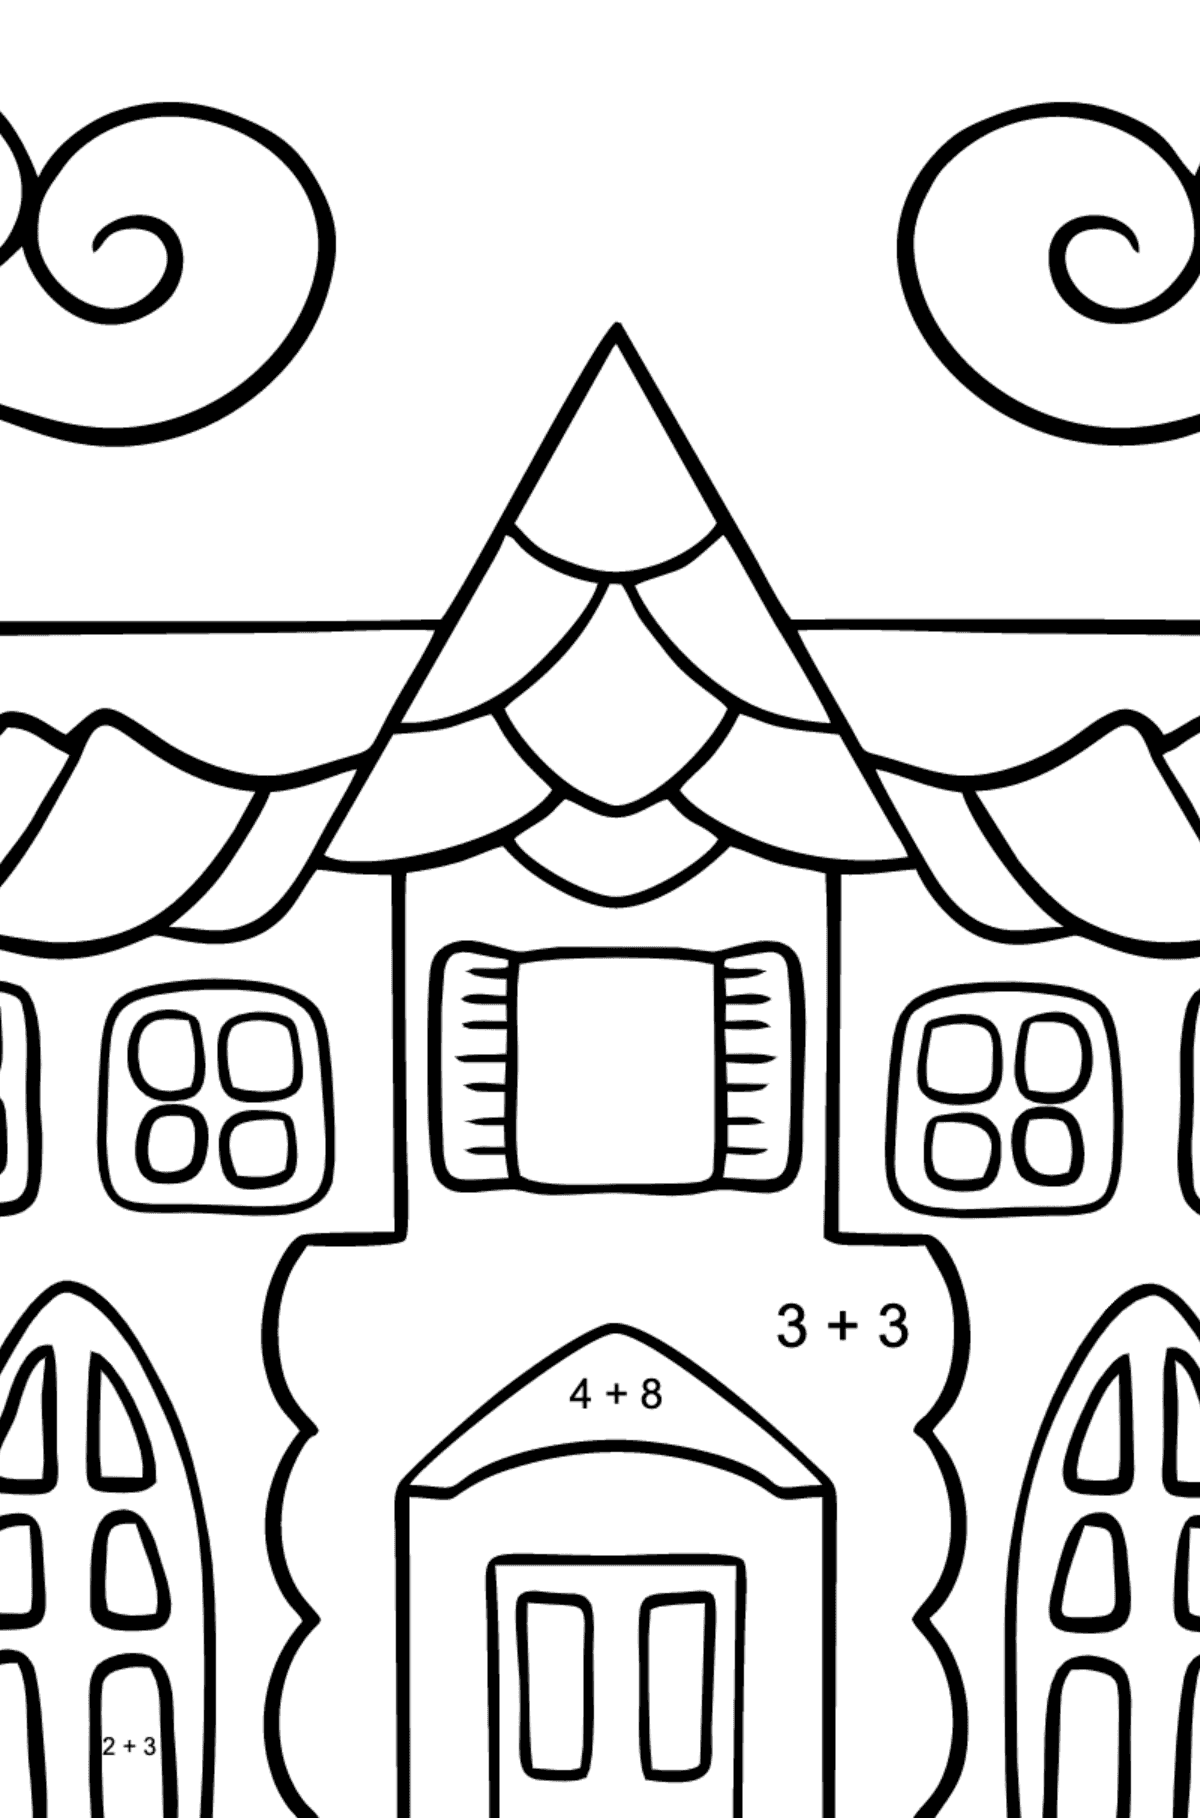 Simple Coloring Page - A House in an Enchanted Kingdom for Kids  - Color by Number Addition